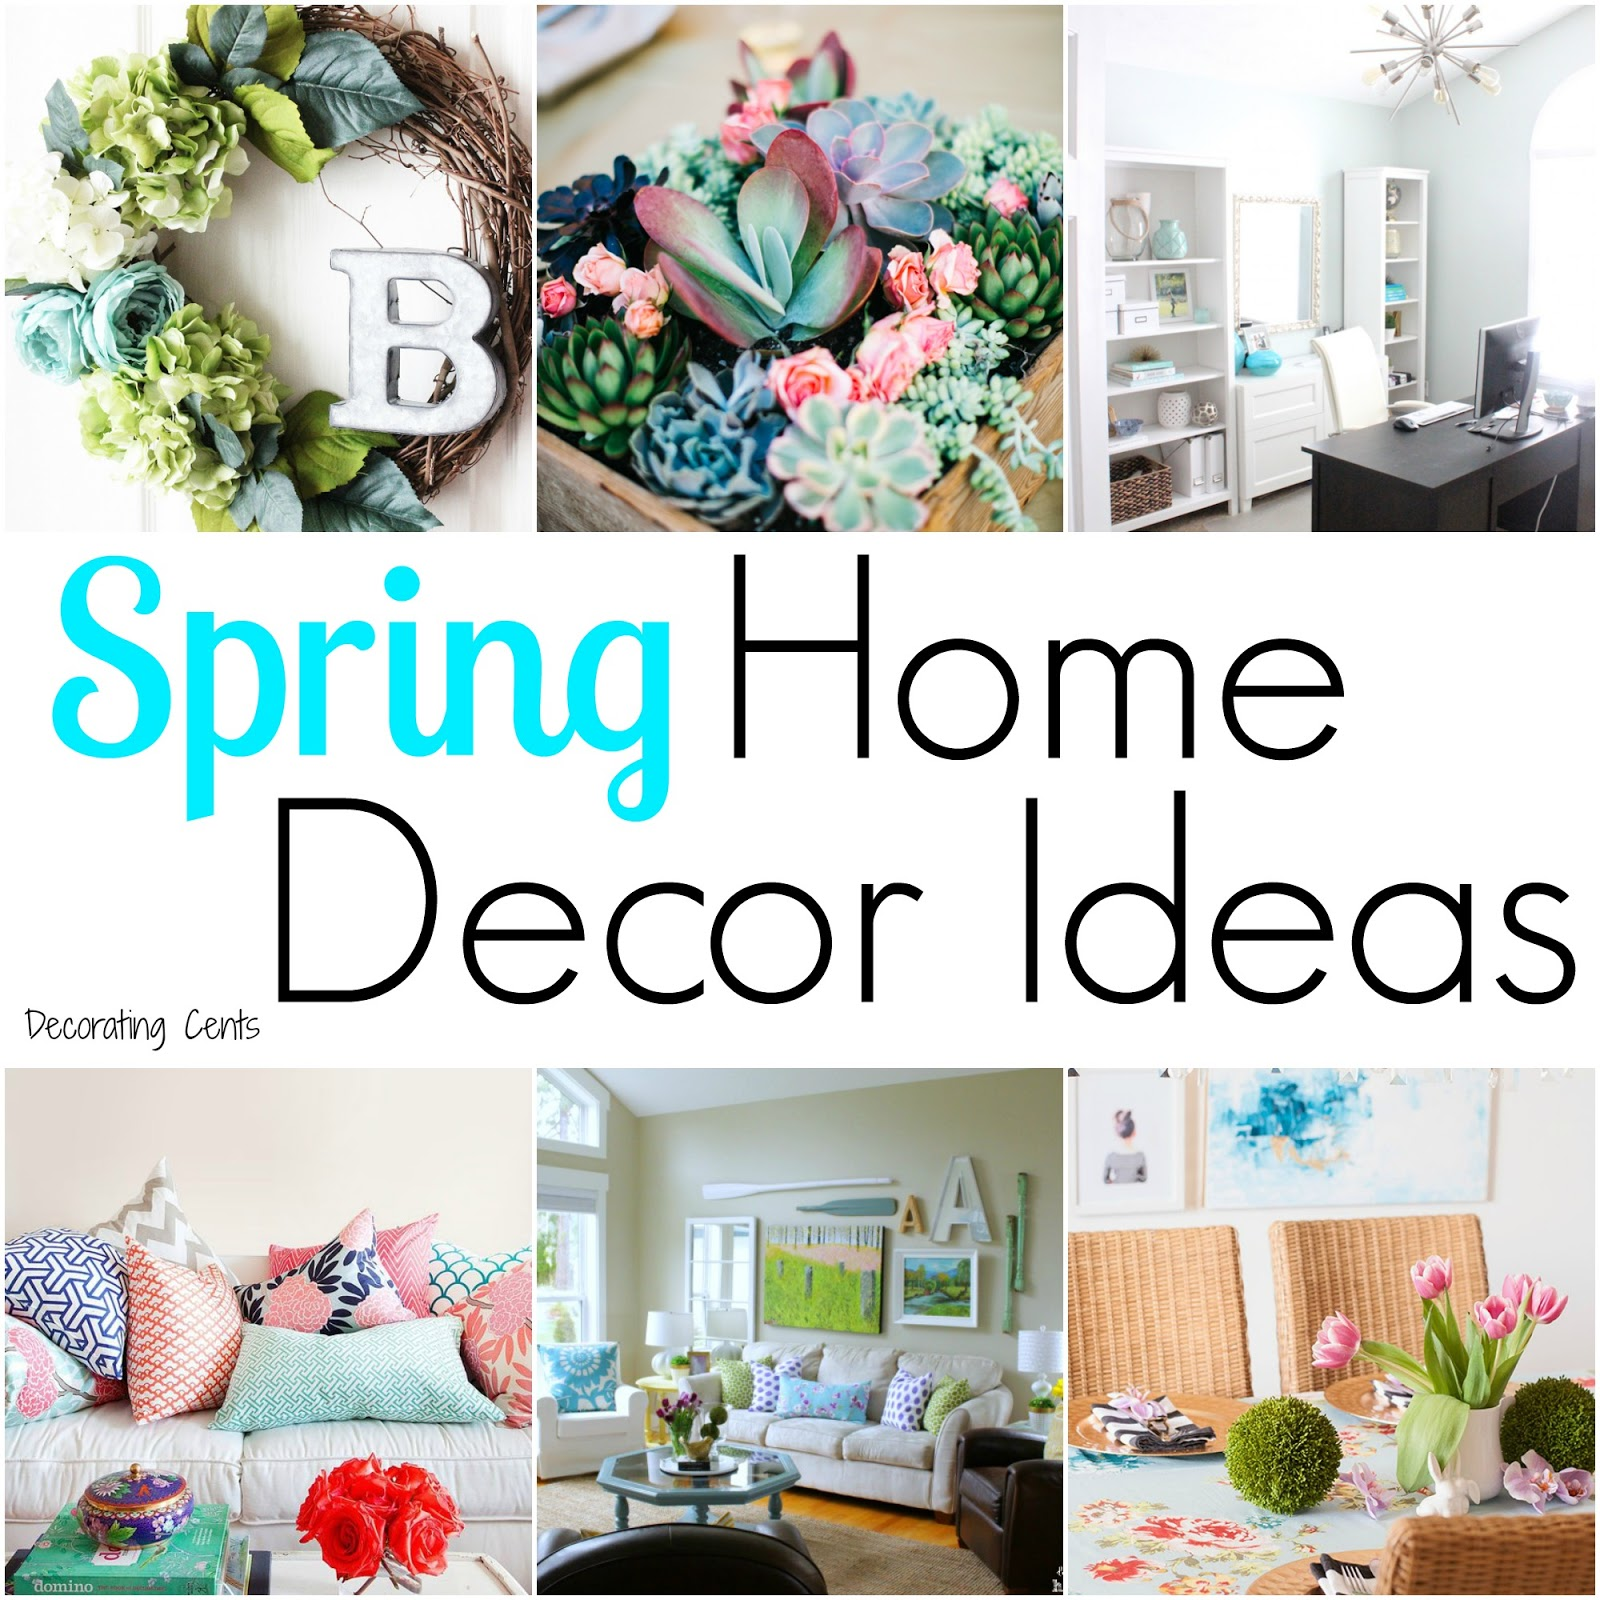 Decorating cents spring home decor ideas for Home by decor